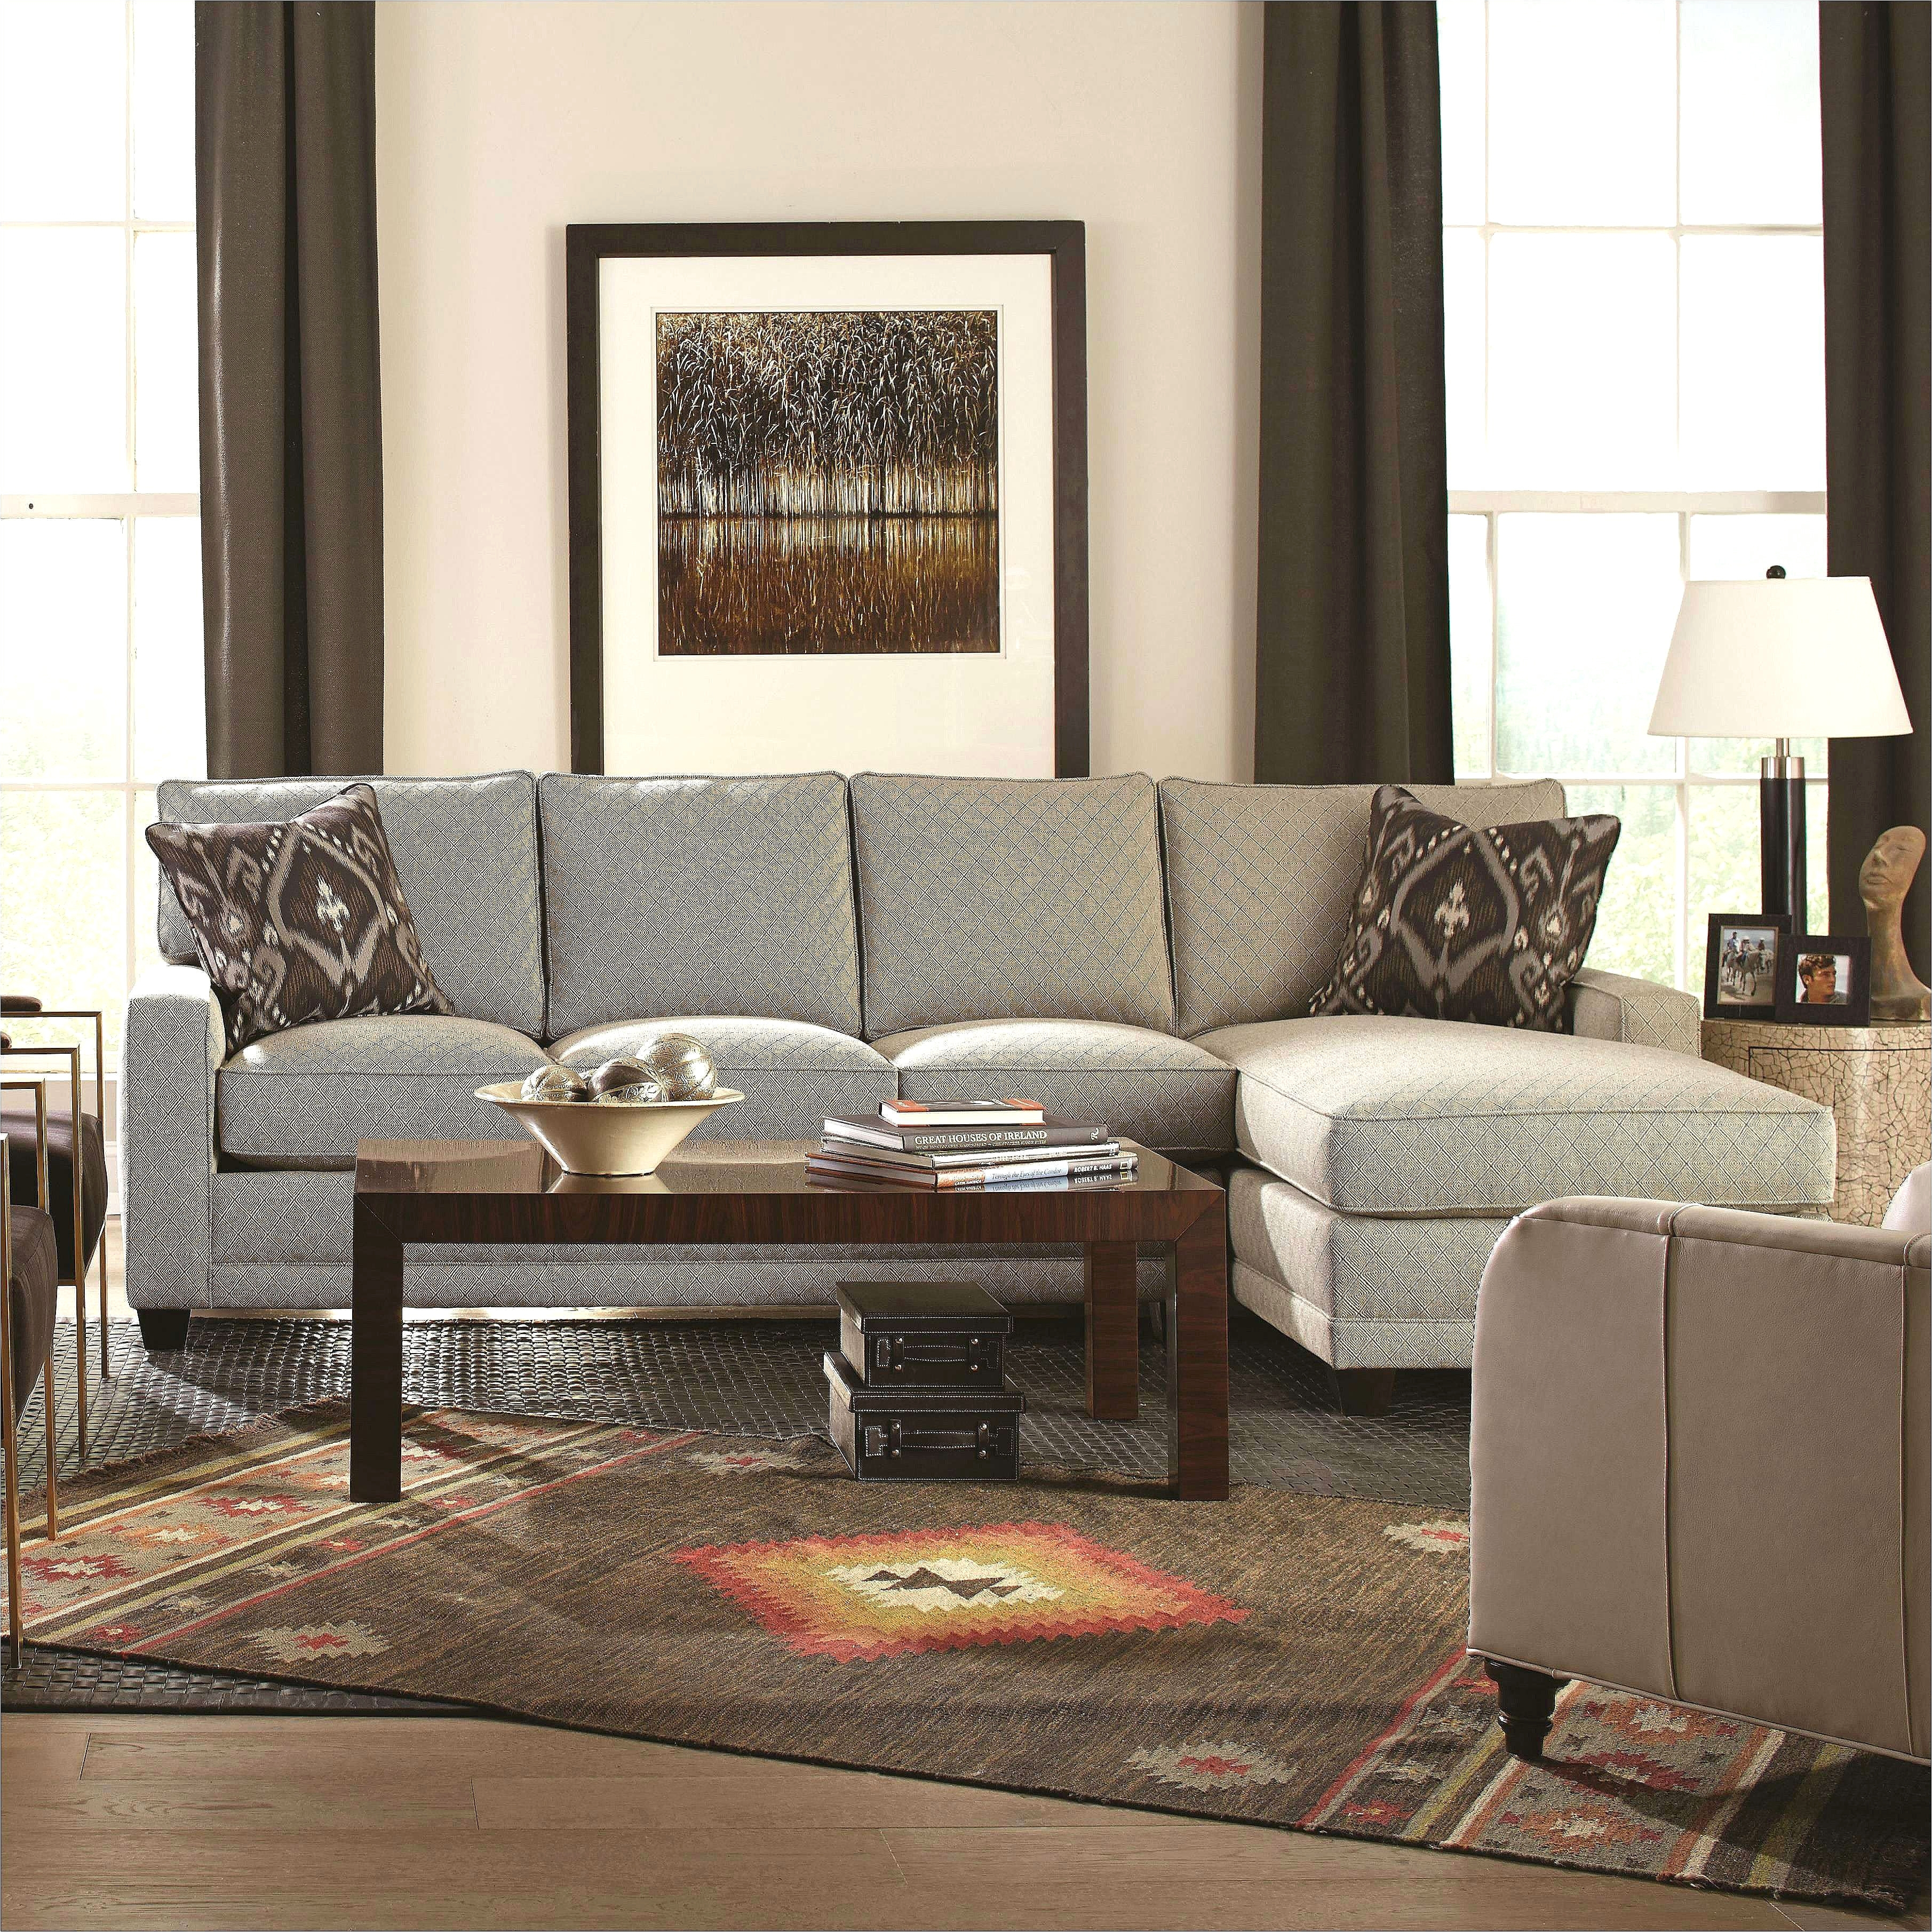 Living Room Tables For Sale Amazing Living Room Dining Room inside 11 Some of the Coolest Designs of How to Make Living Room Sets For Sale